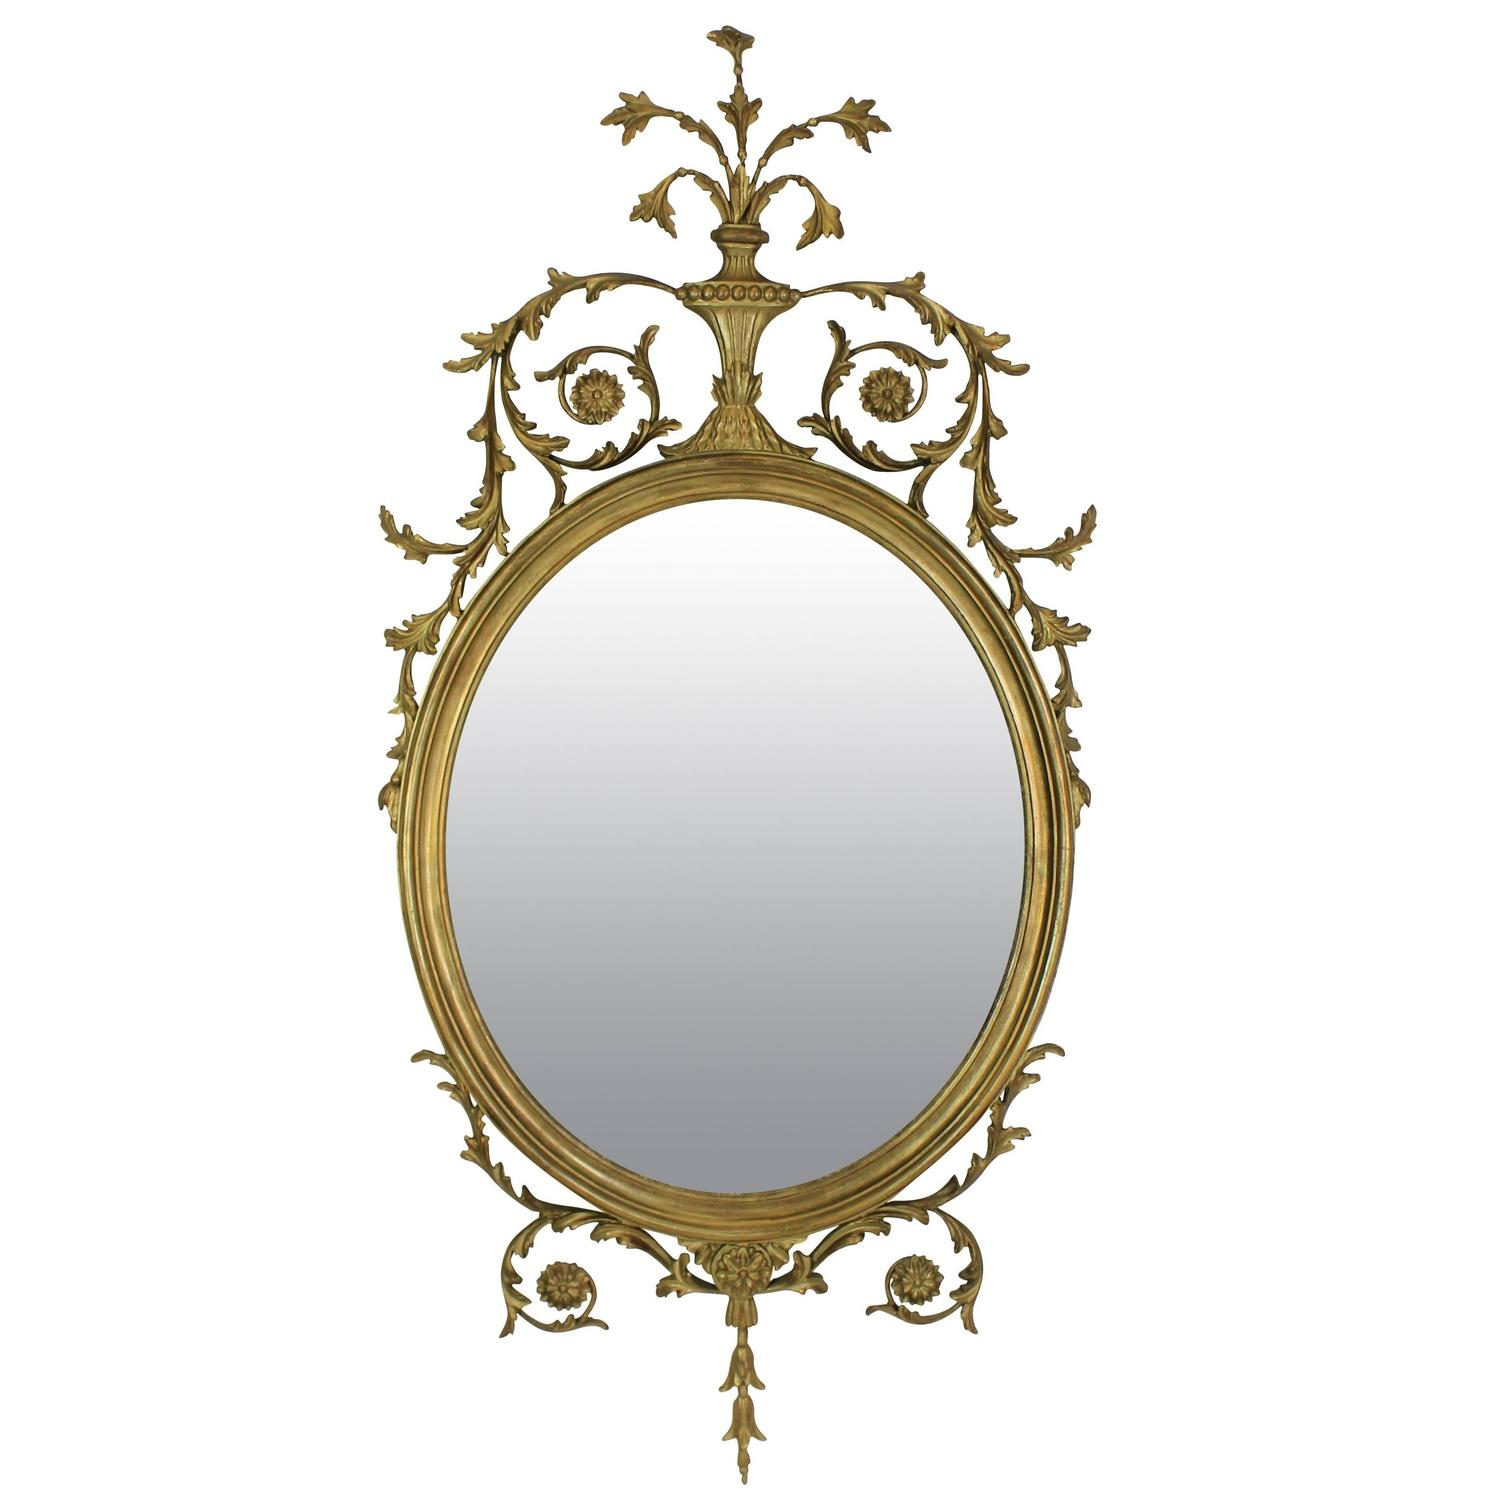 Adam style giltwood mirror for sale at 1stdibs for Adam style mirror